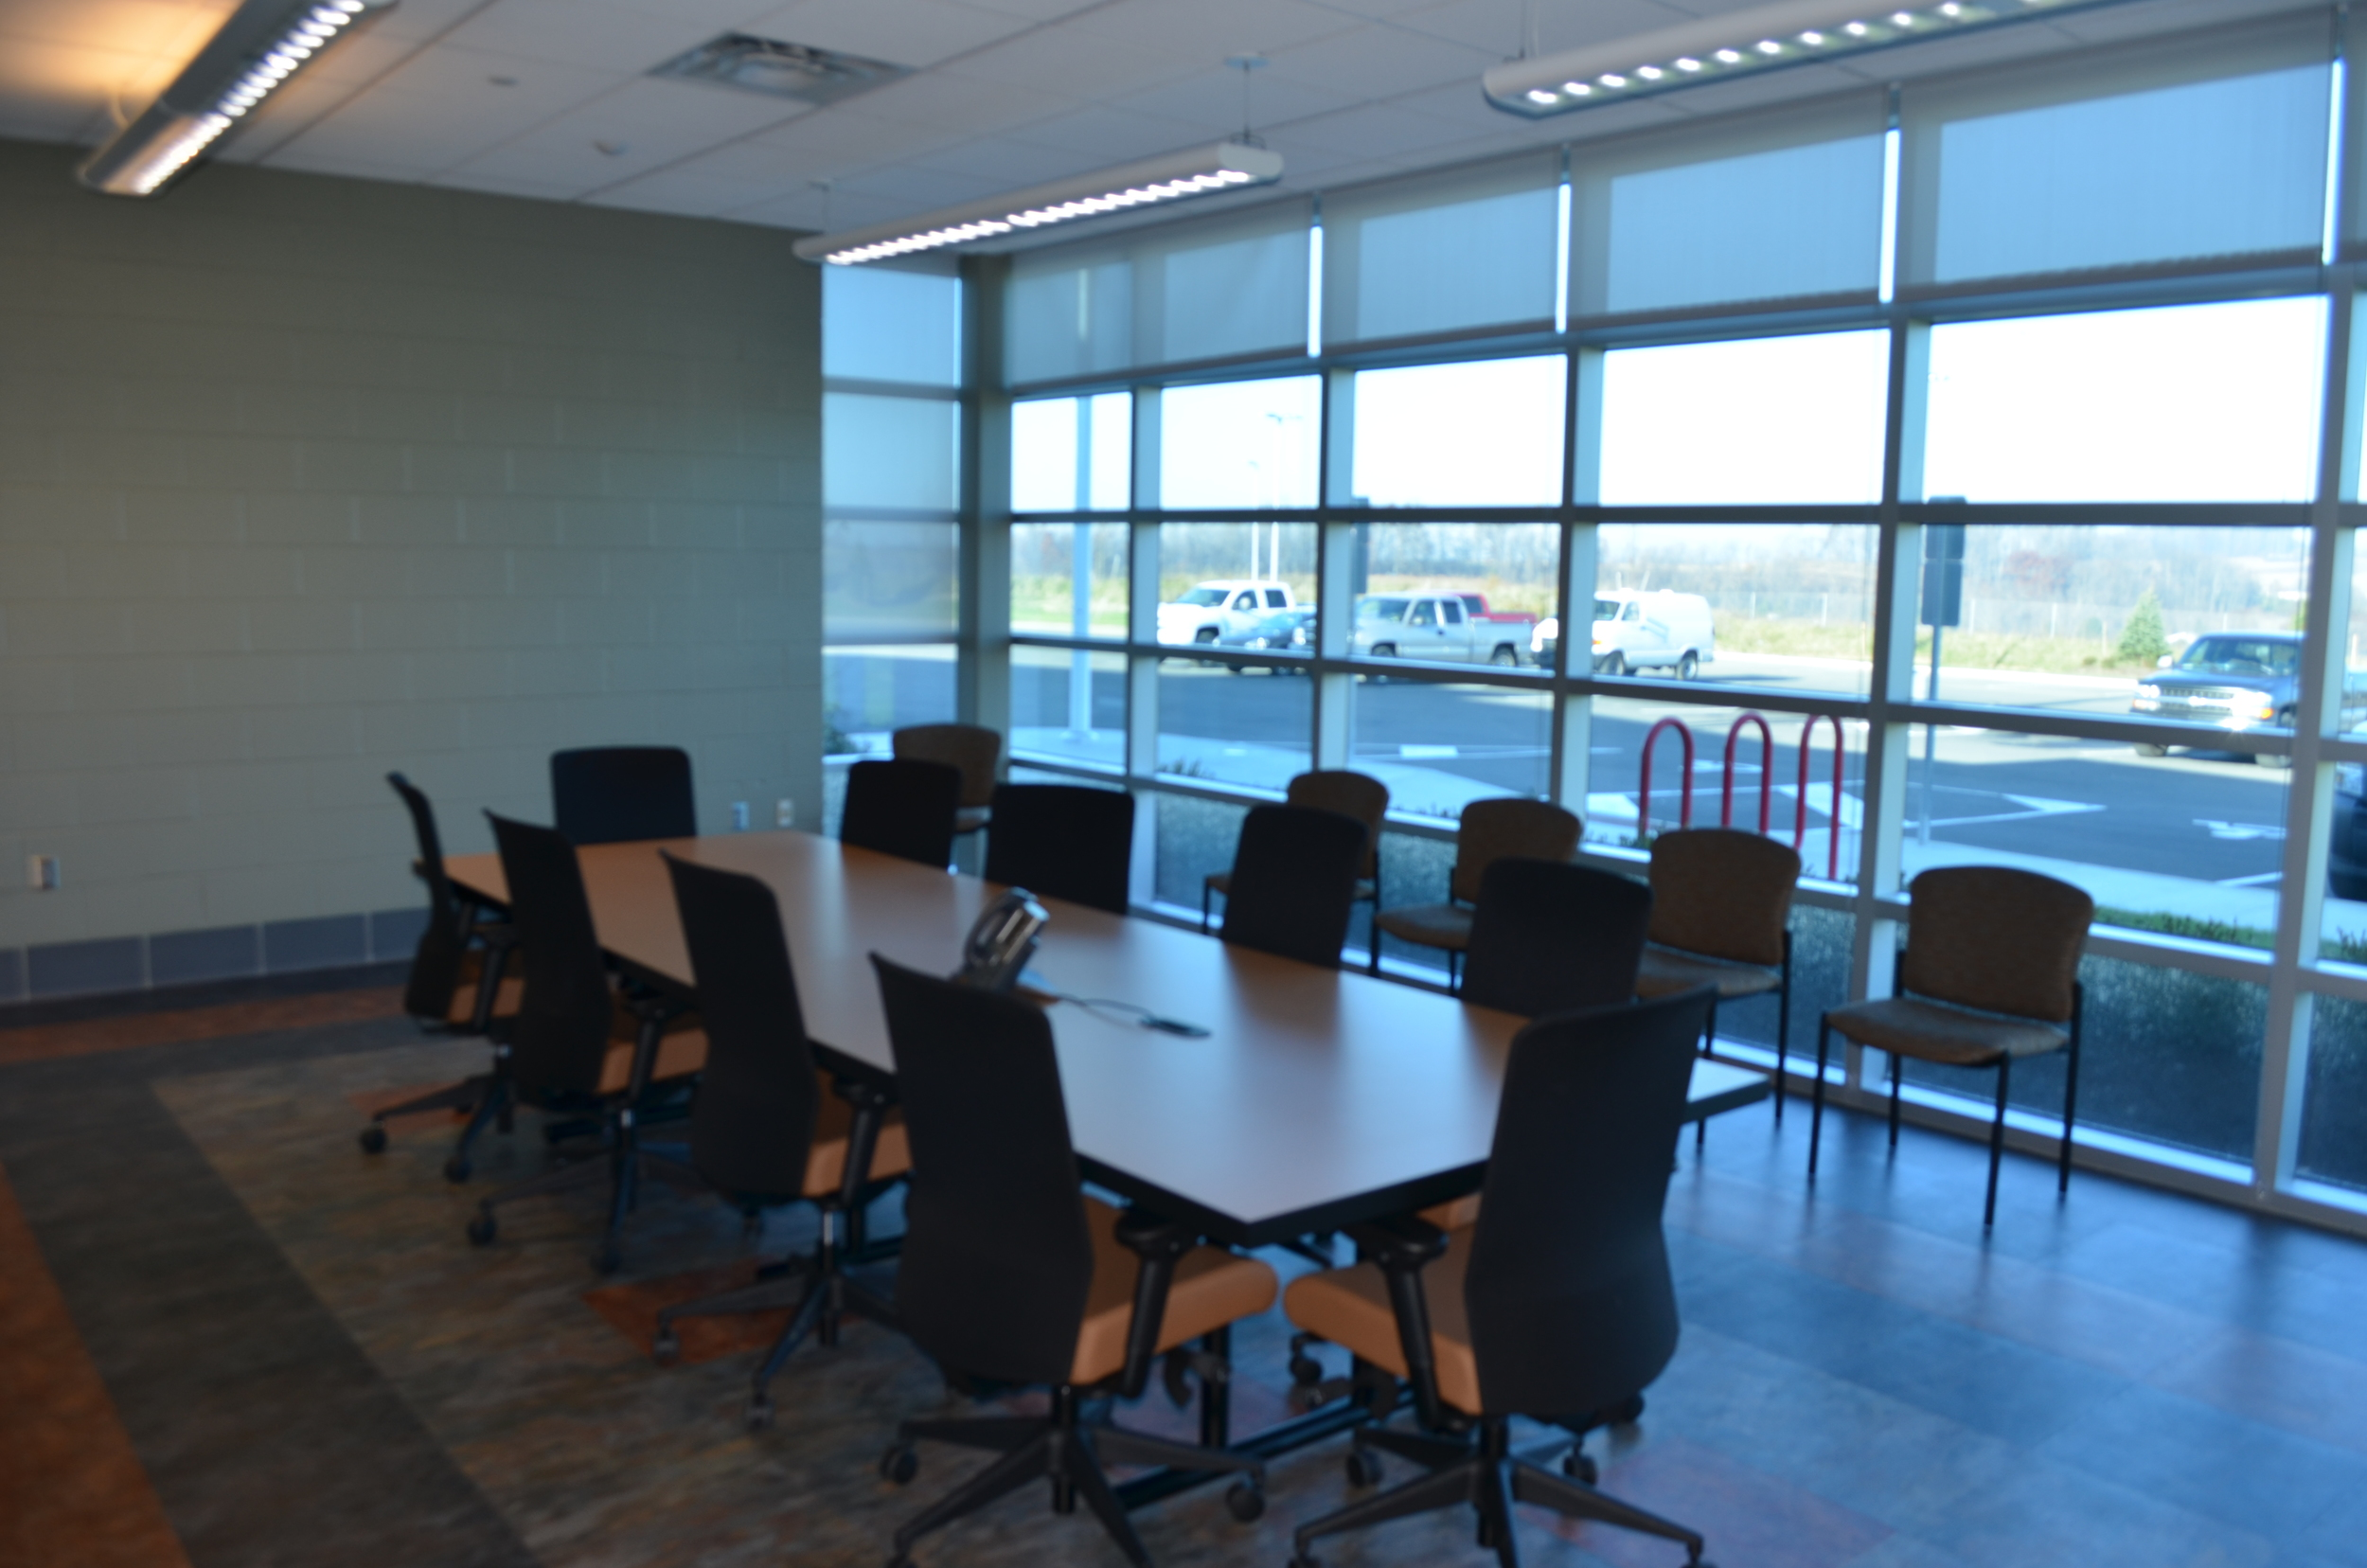 2012-11-21_-_Conference_Room.jpg